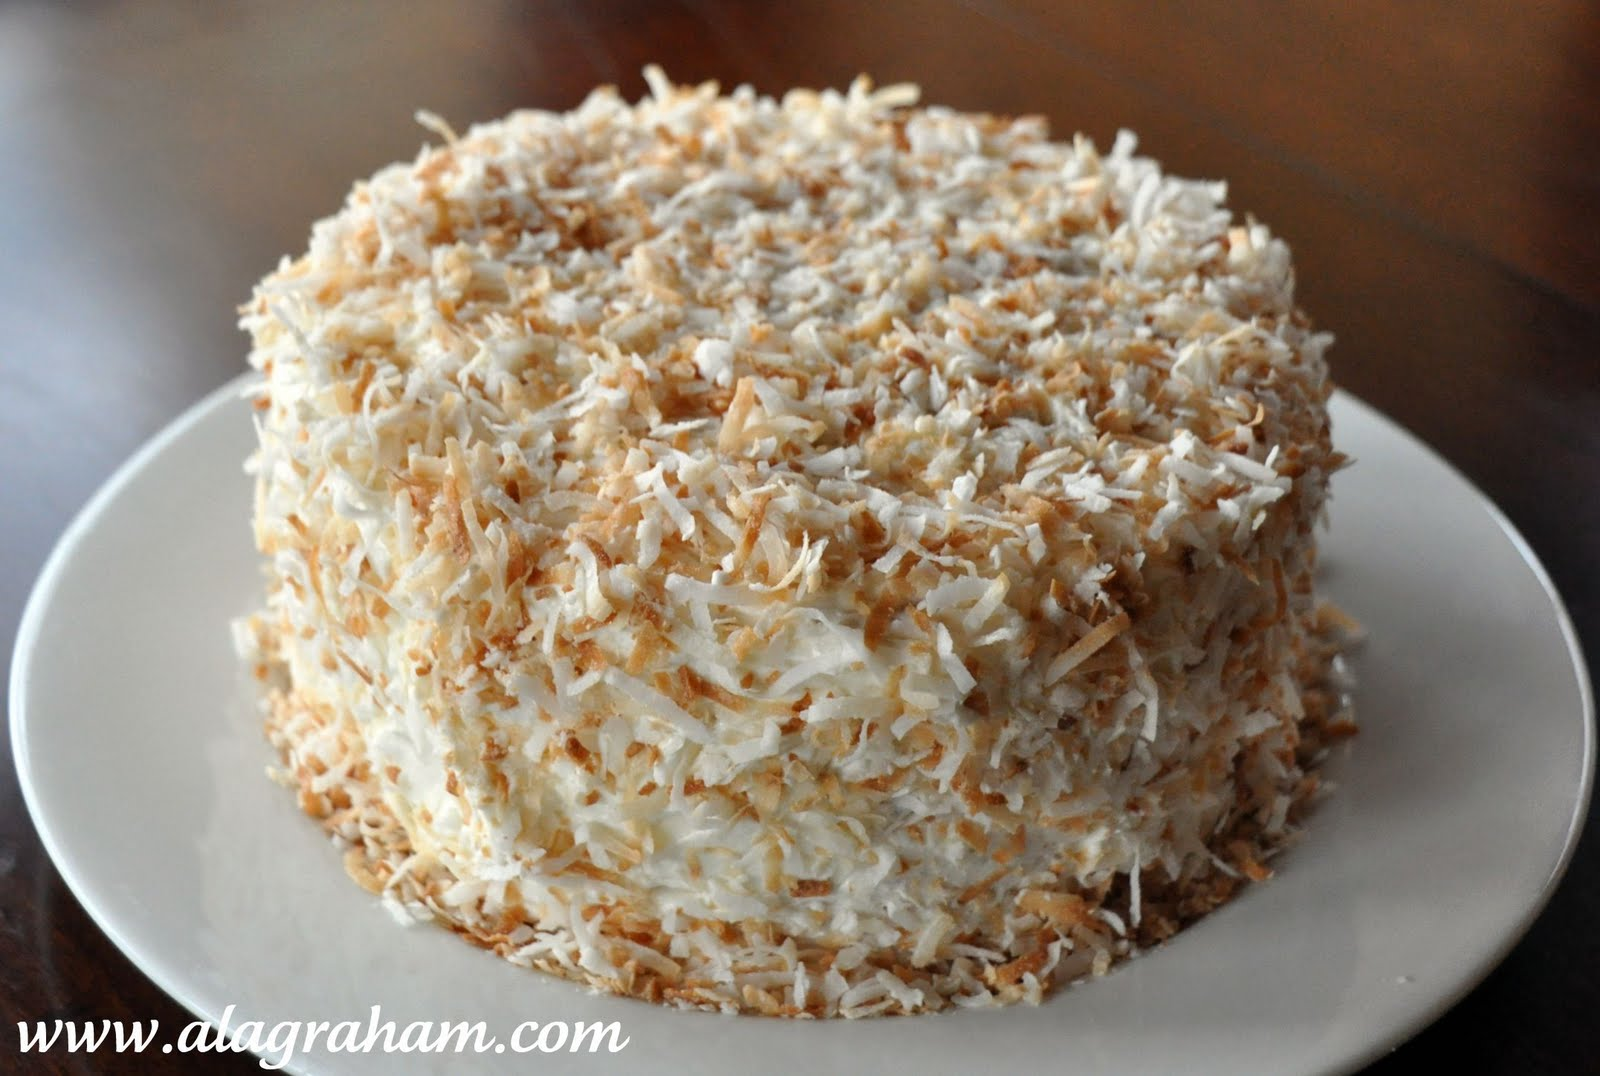 A La Graham The Best Coconut Cake